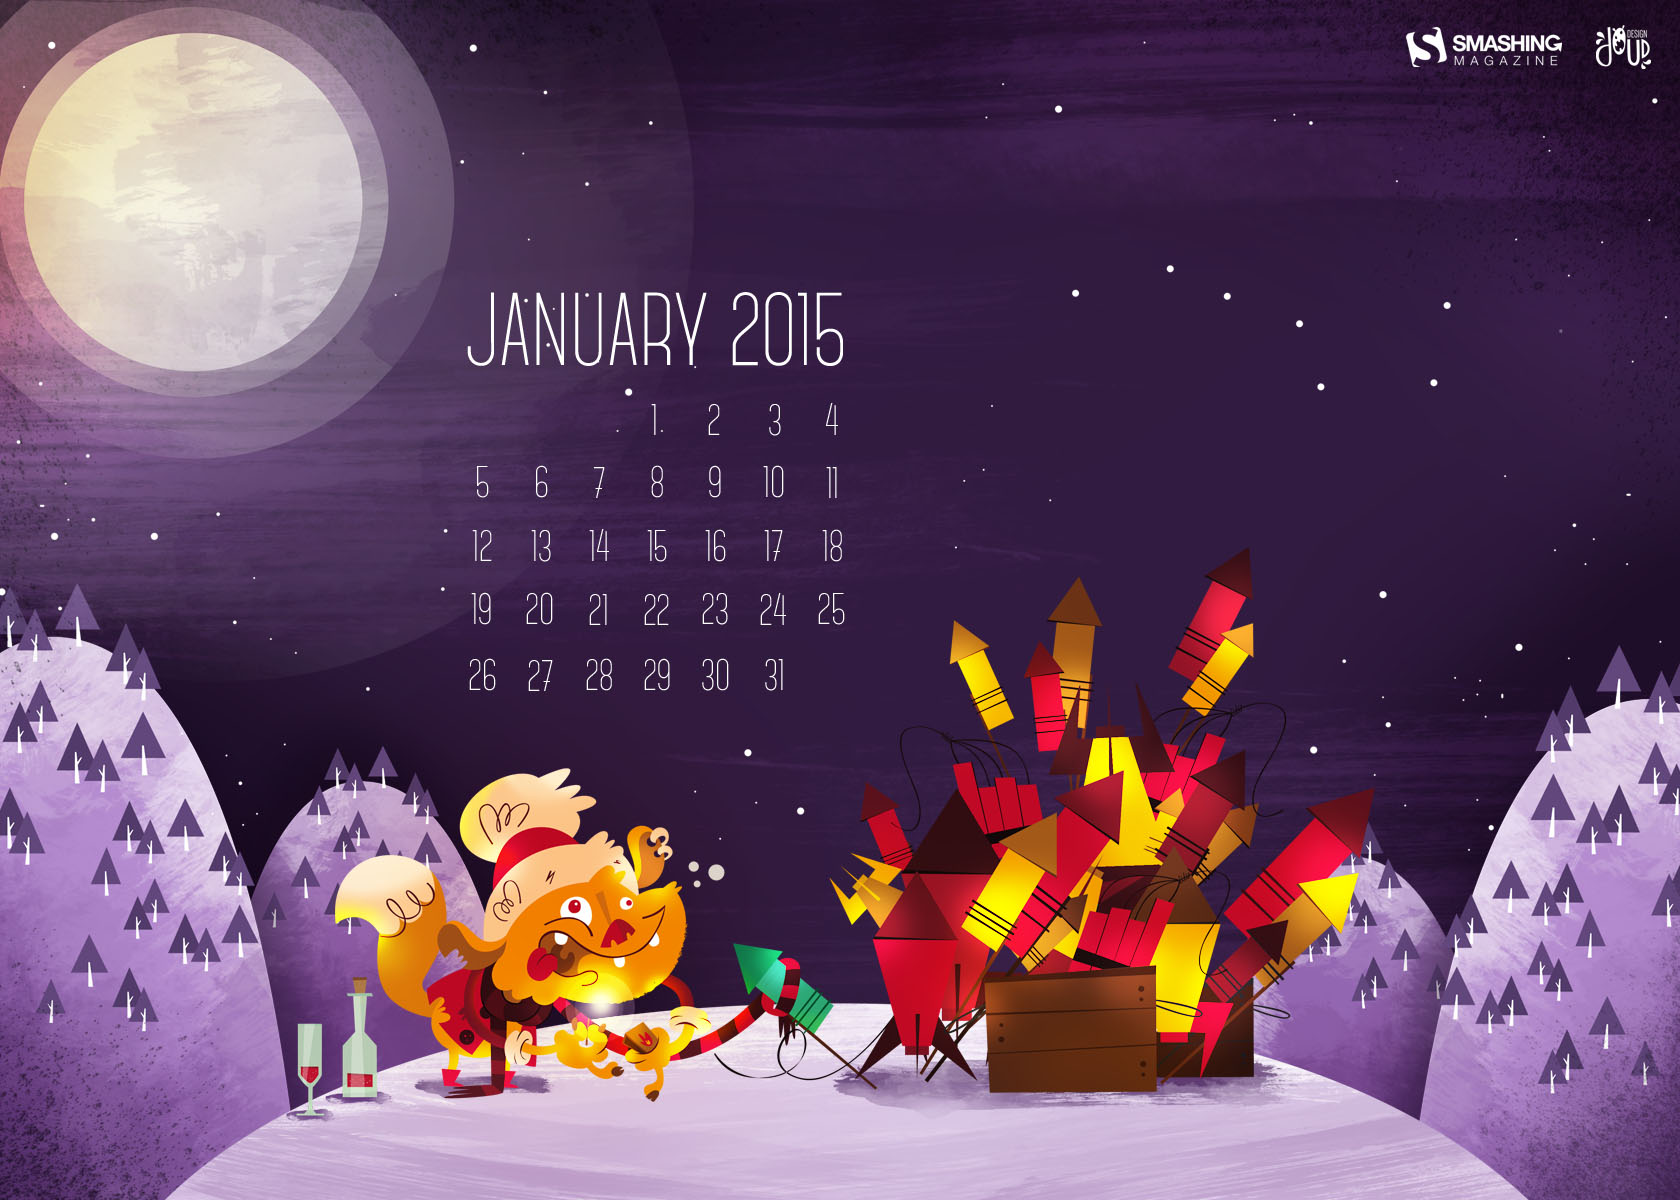 Desktop Wallpaper Calendars January 2015 Smashing Magazine 1680x1200